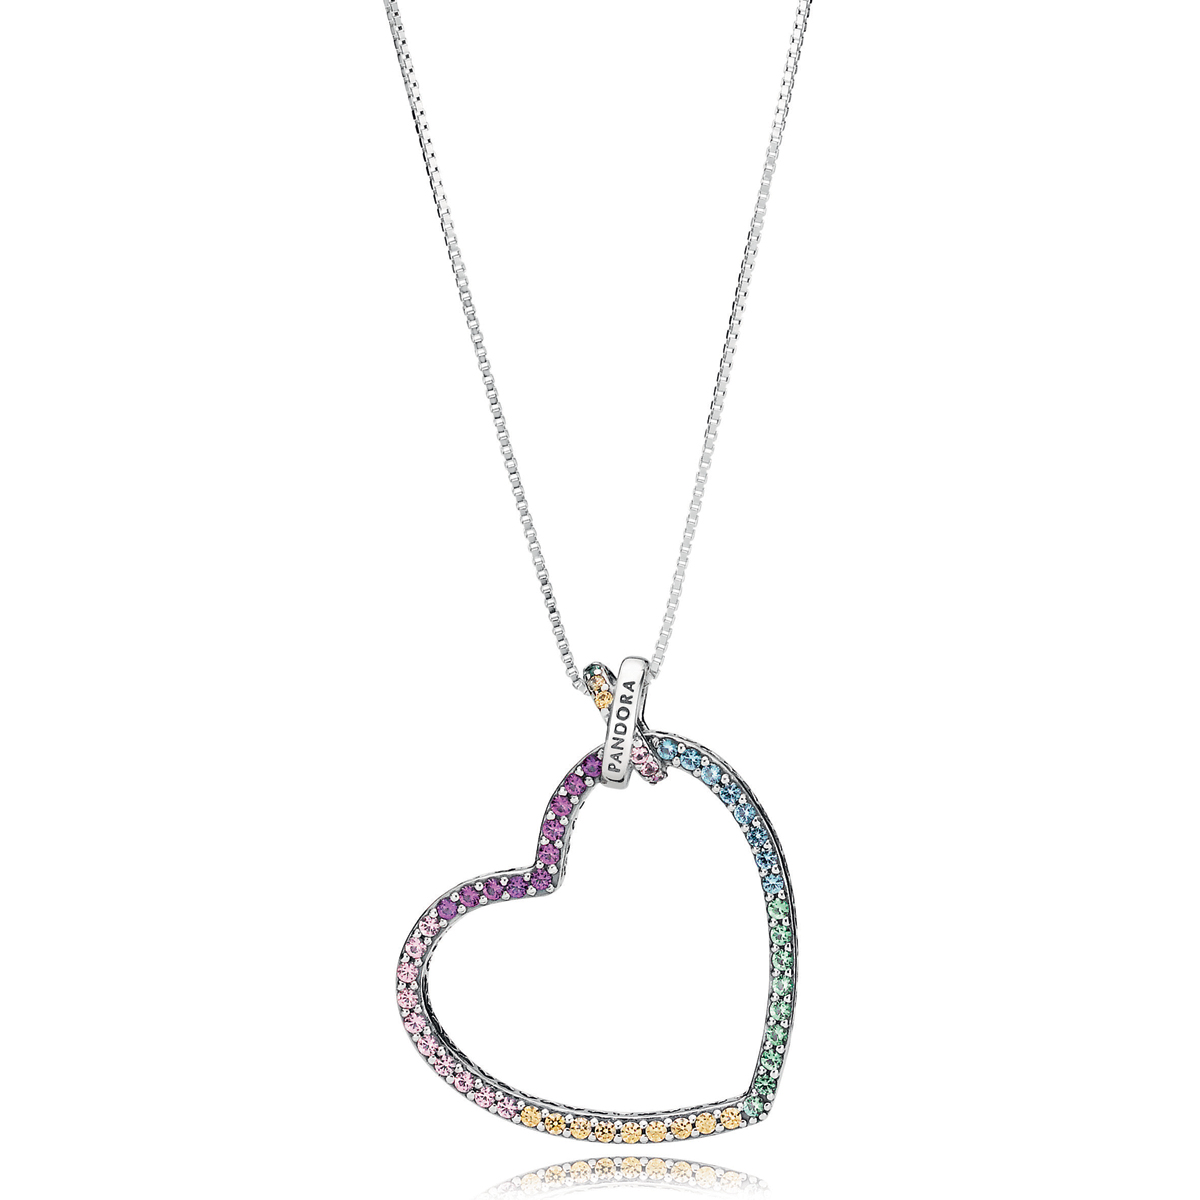 jewellery heart floating forever necklace products today by silver sterling jilco